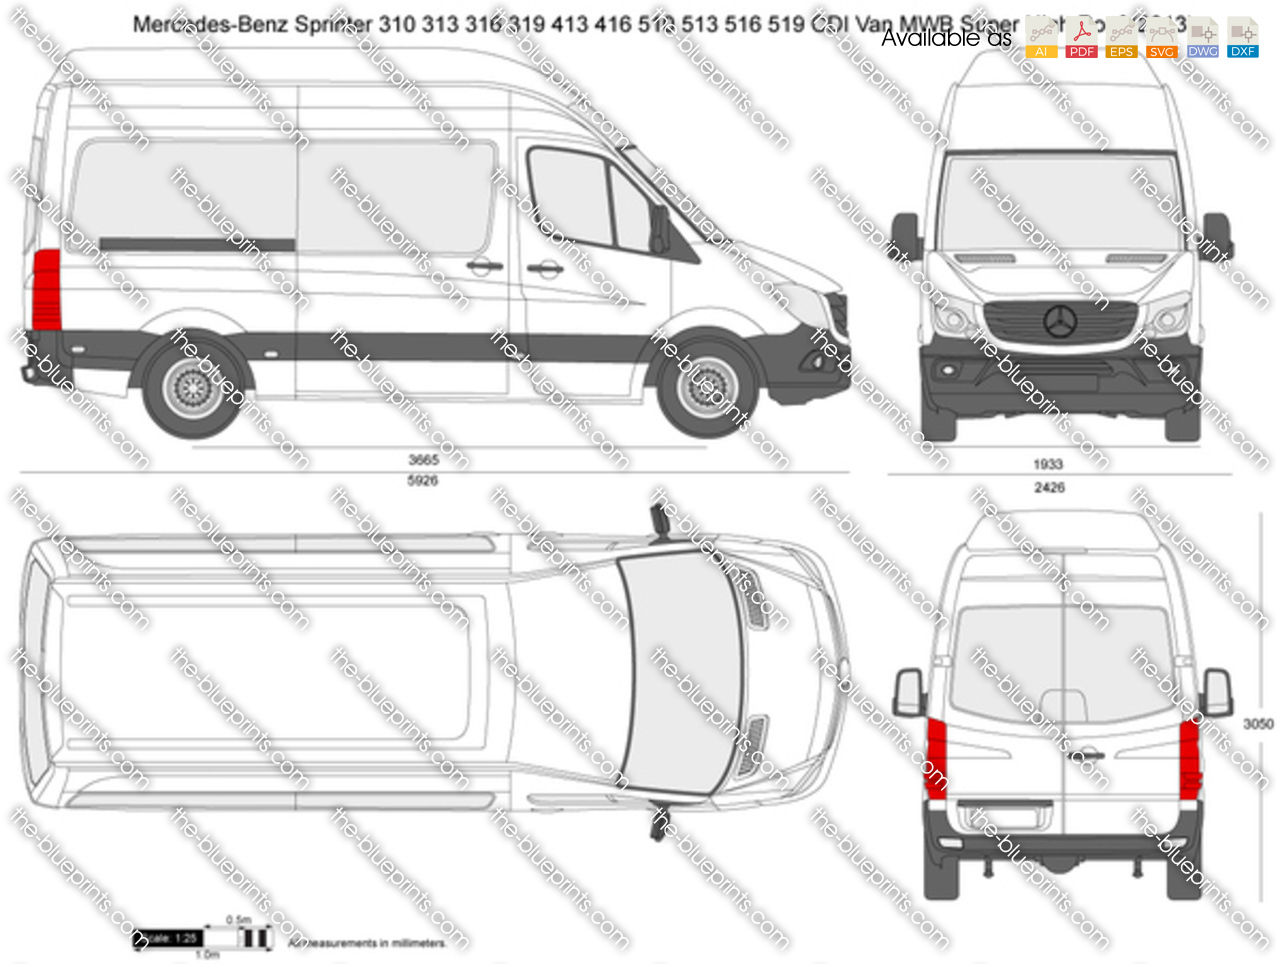 Mercedes Benz Sprinter 310 313 316 319 413 416 510 513 516